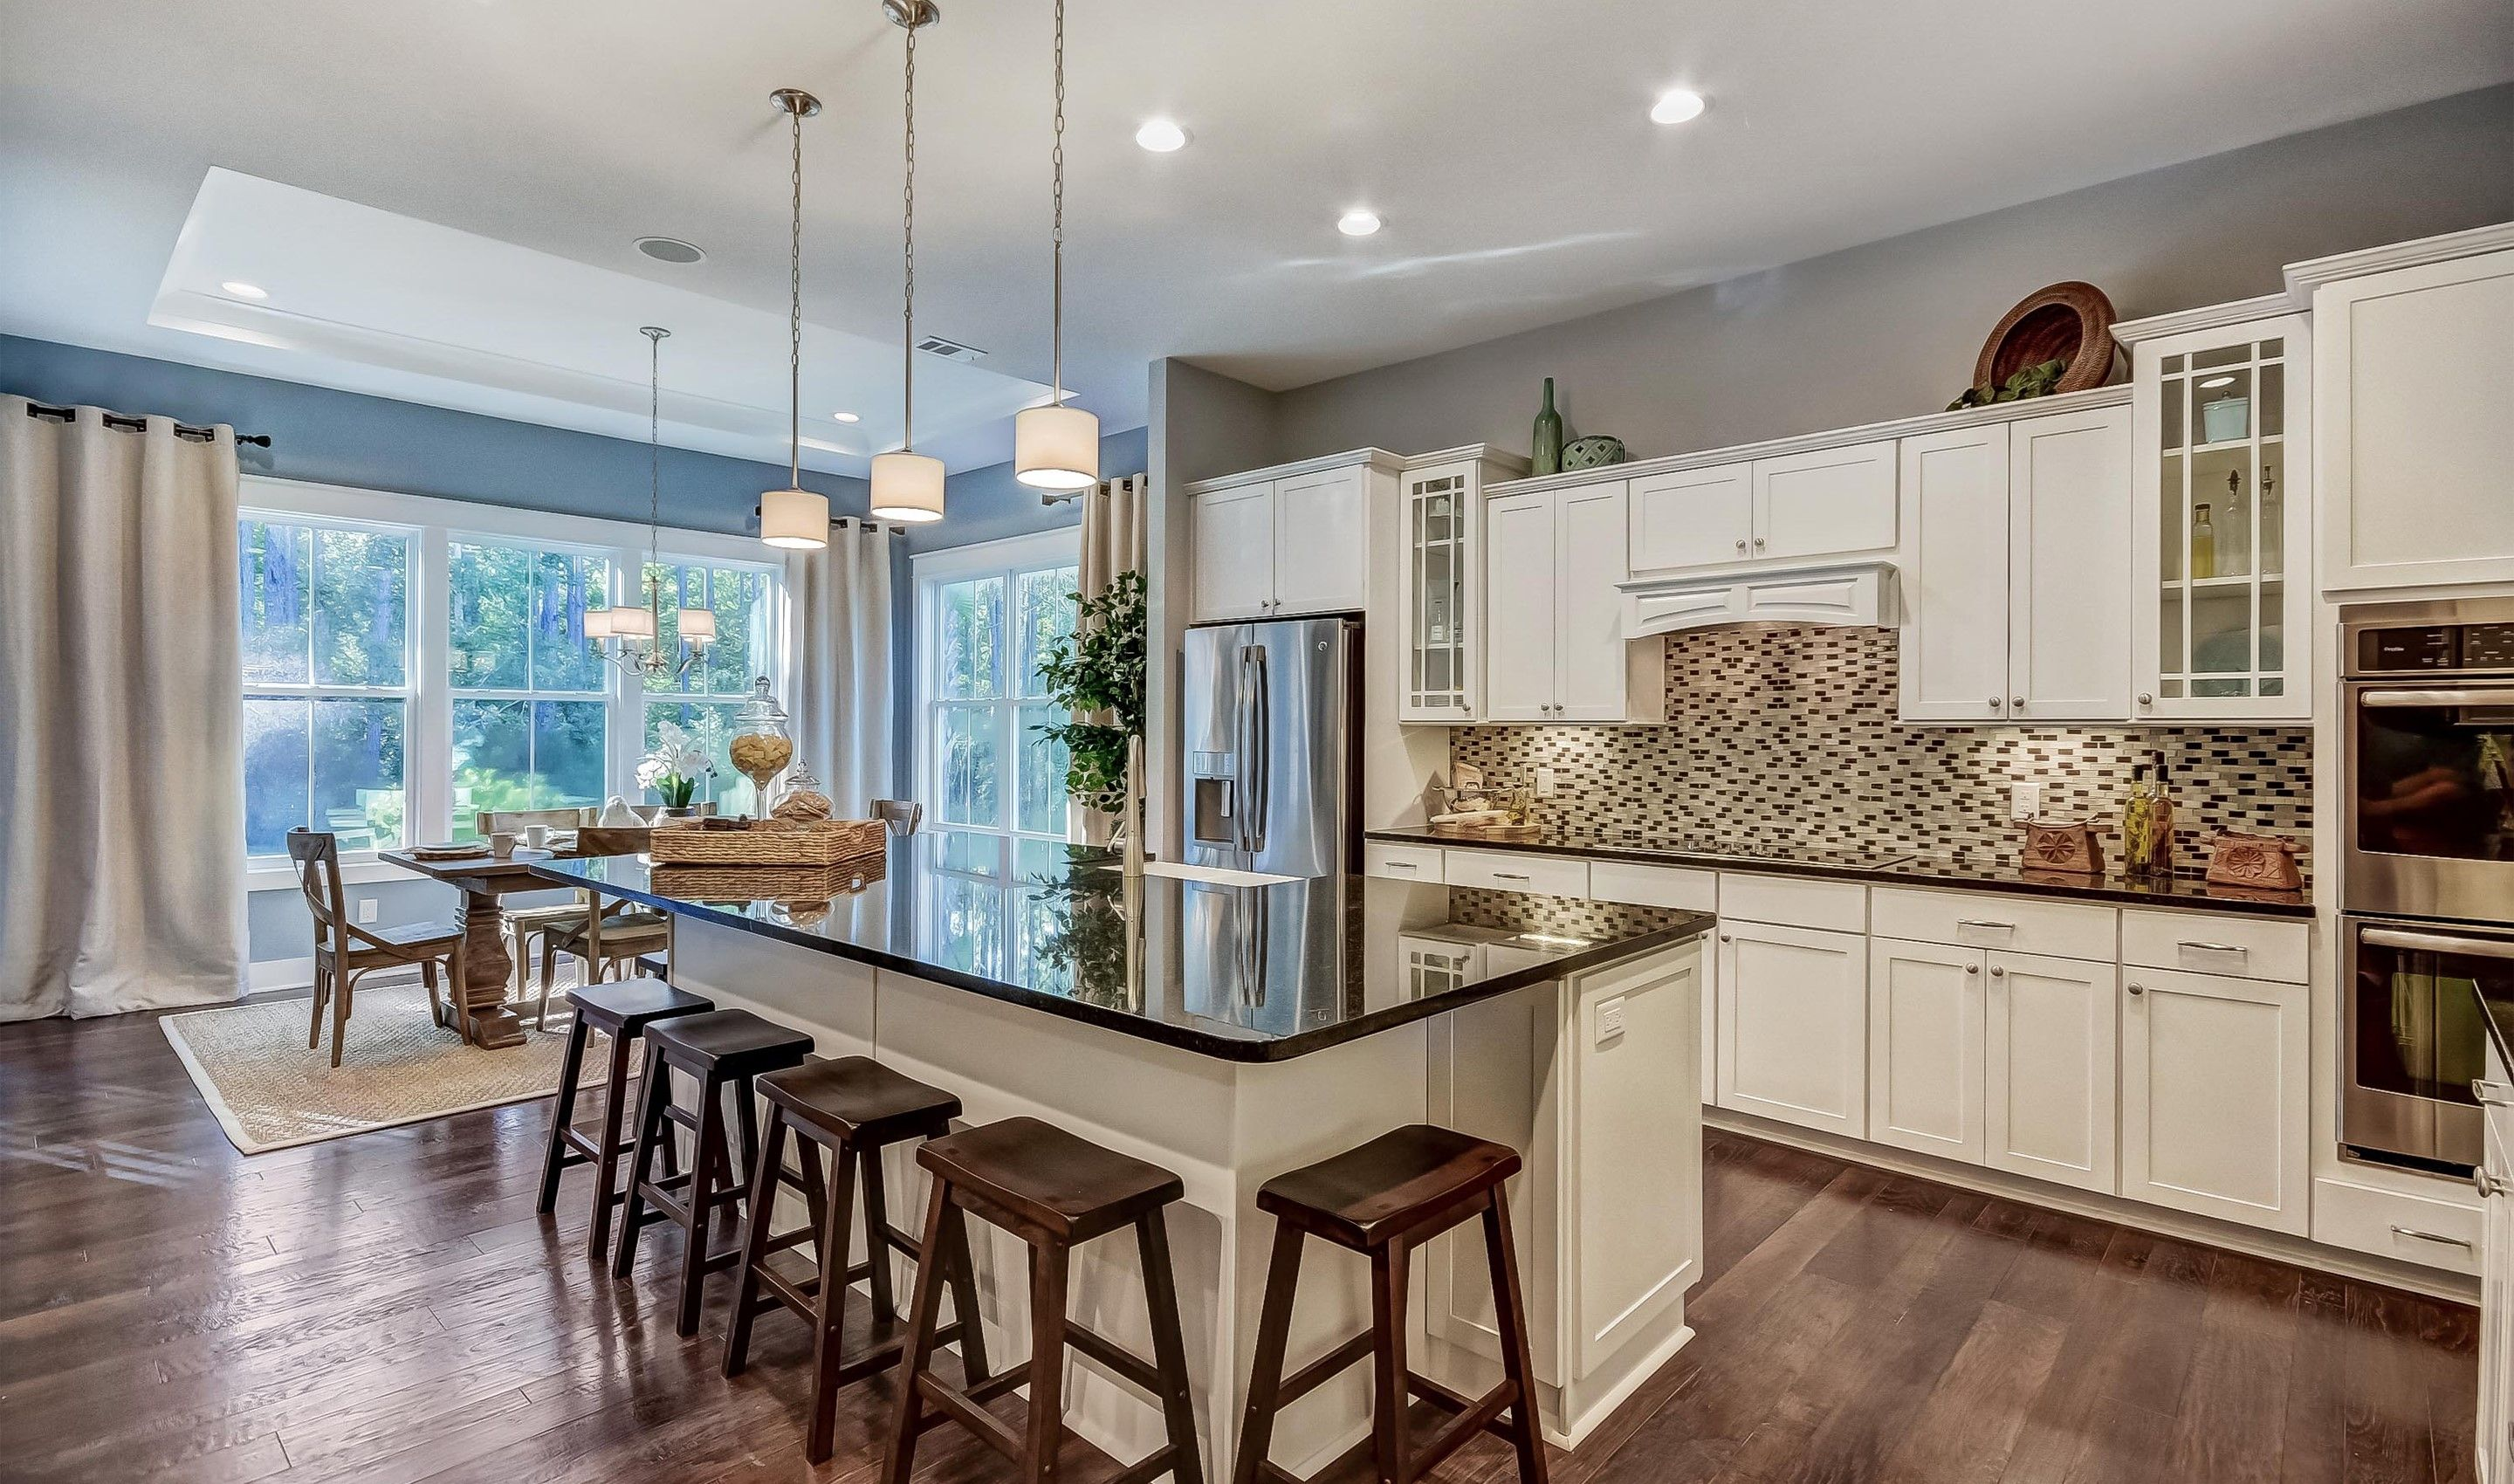 Kitchen featured in the Ravenna Loft By K. Hovnanian's® Four Seasons in Eastern Shore, MD